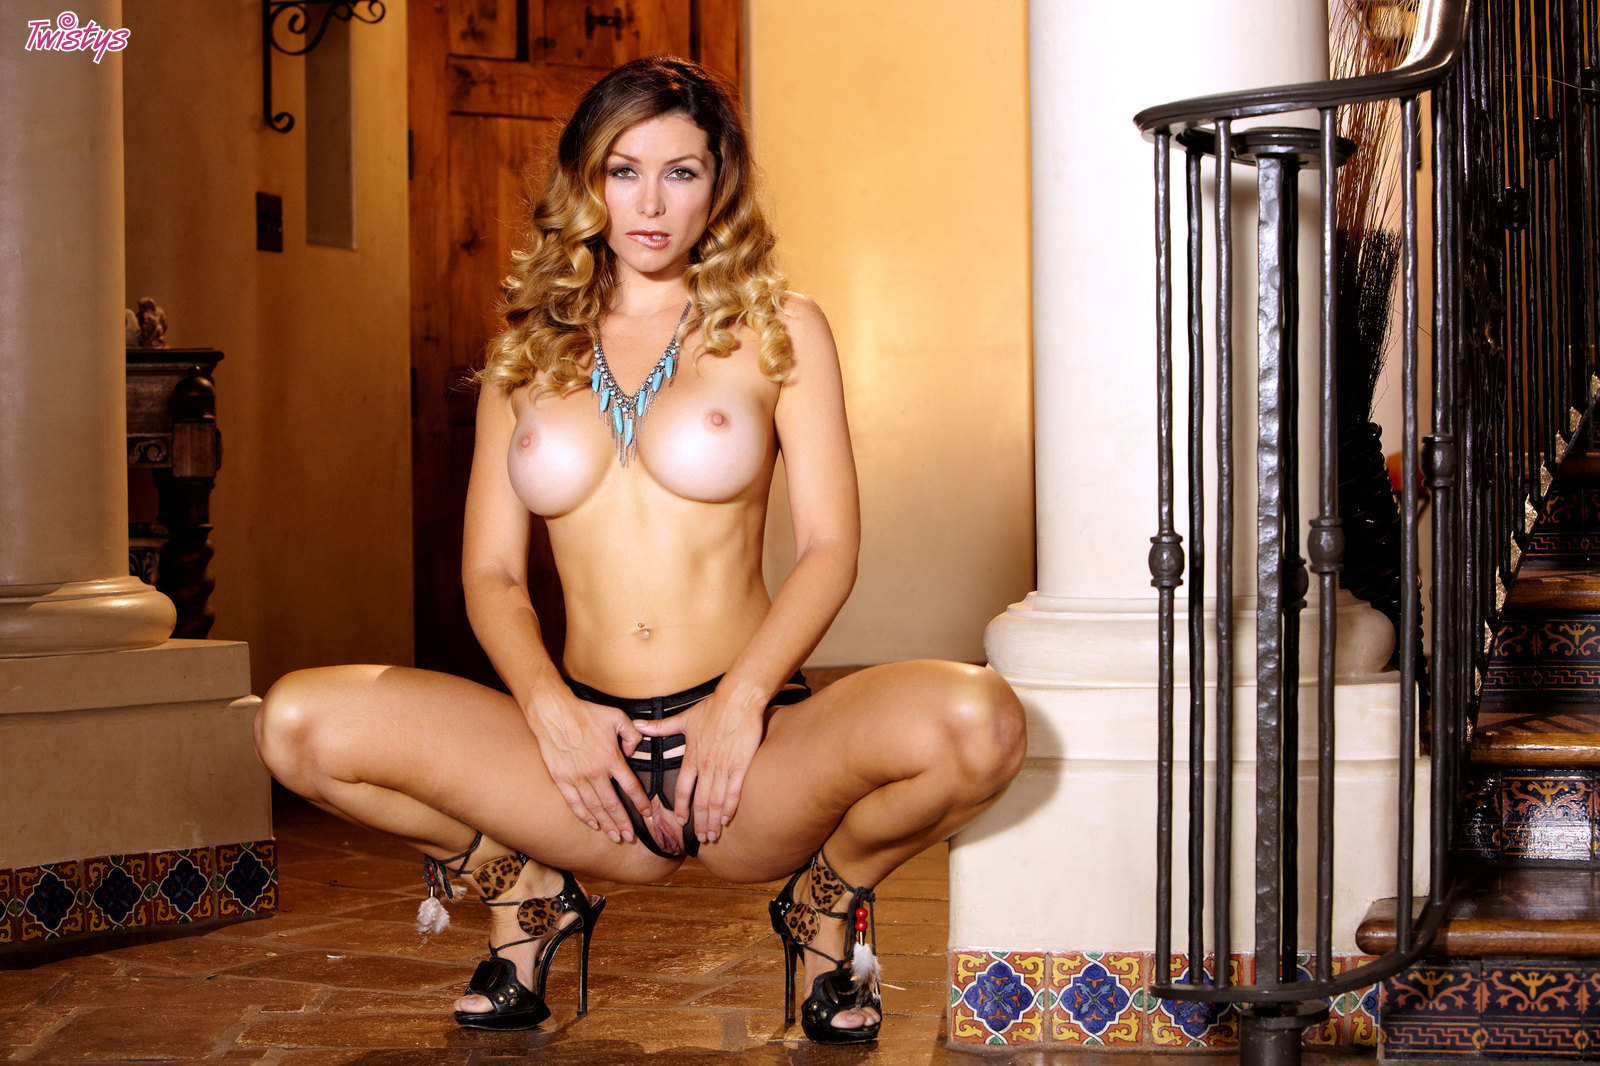 Perfecta hermosa niña Heather Vandeven